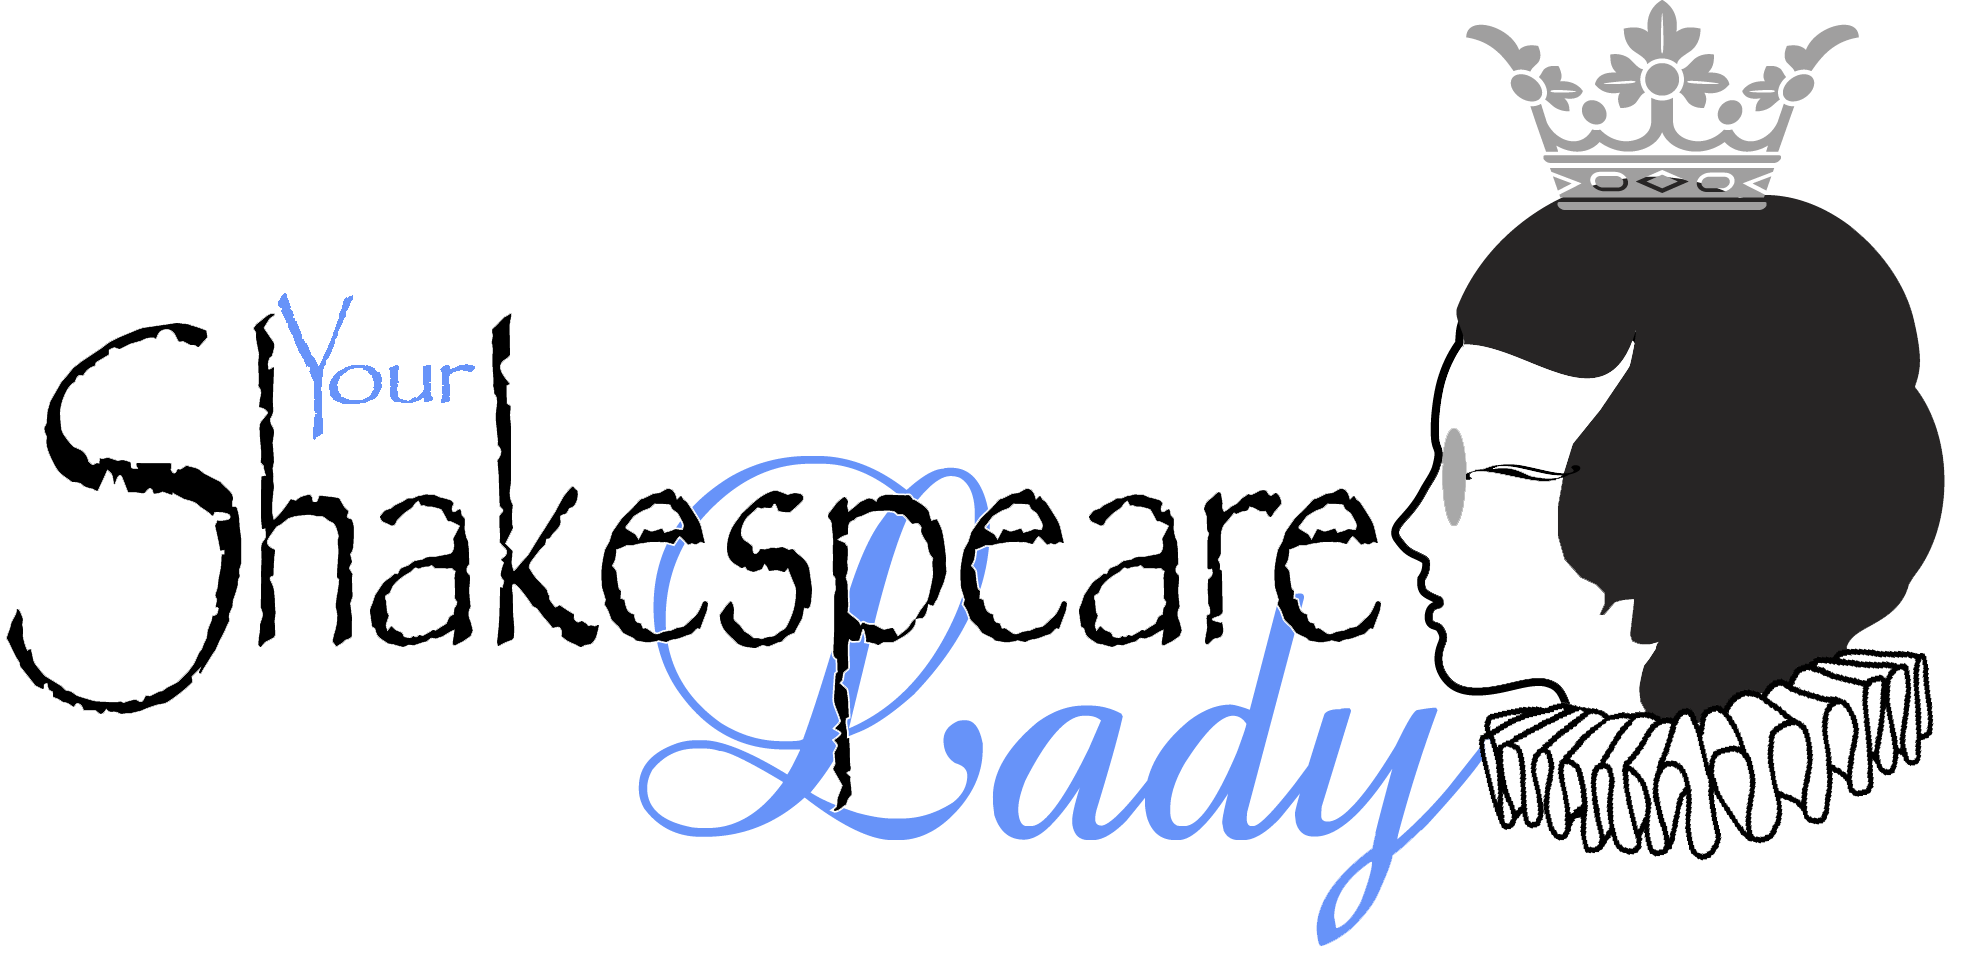 Your Shakespeare Lady logo final.png